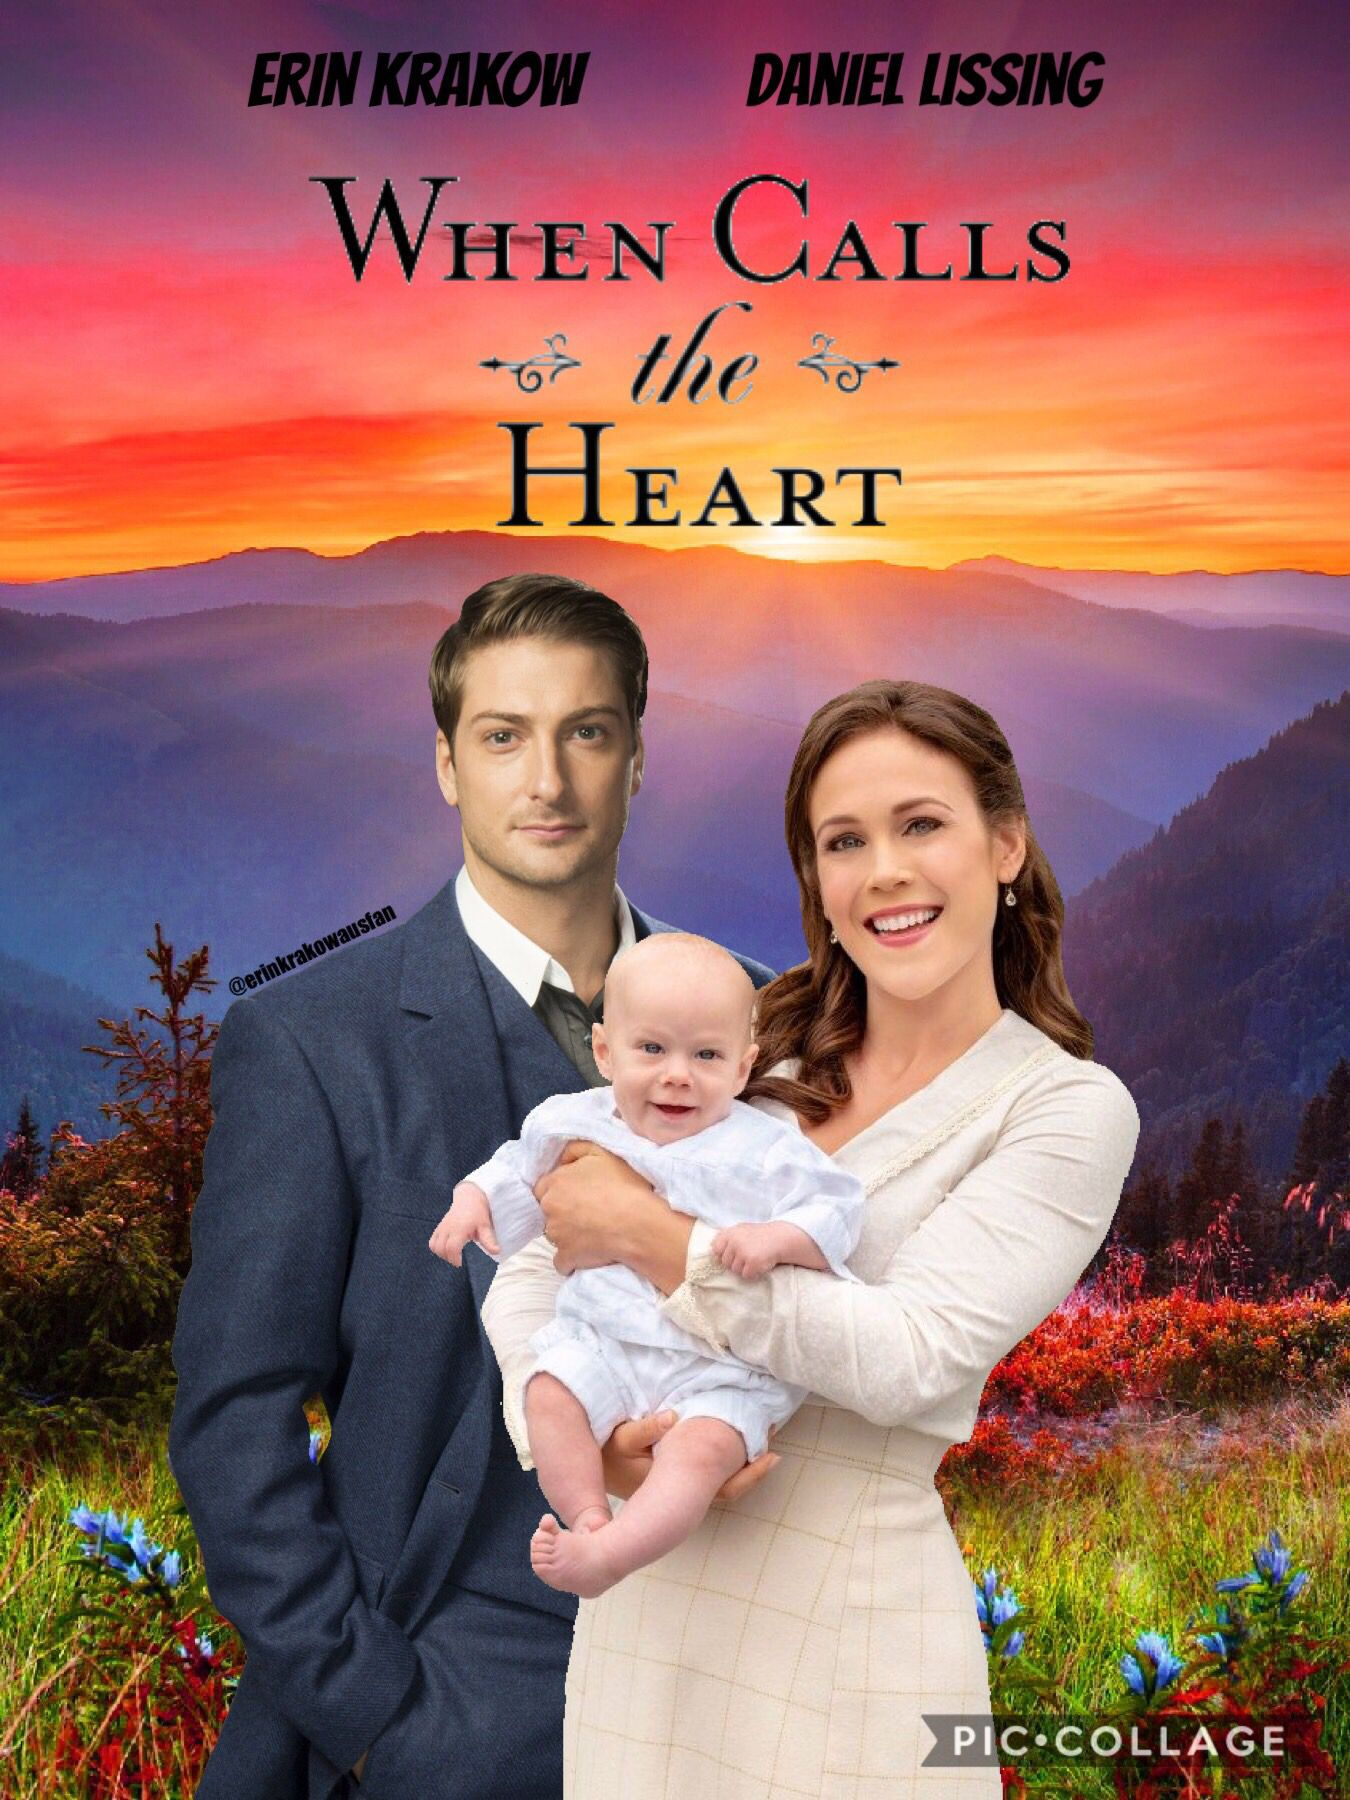 When Calls The Heart Season 8 Episode 2 - Honestly, Elizabeth